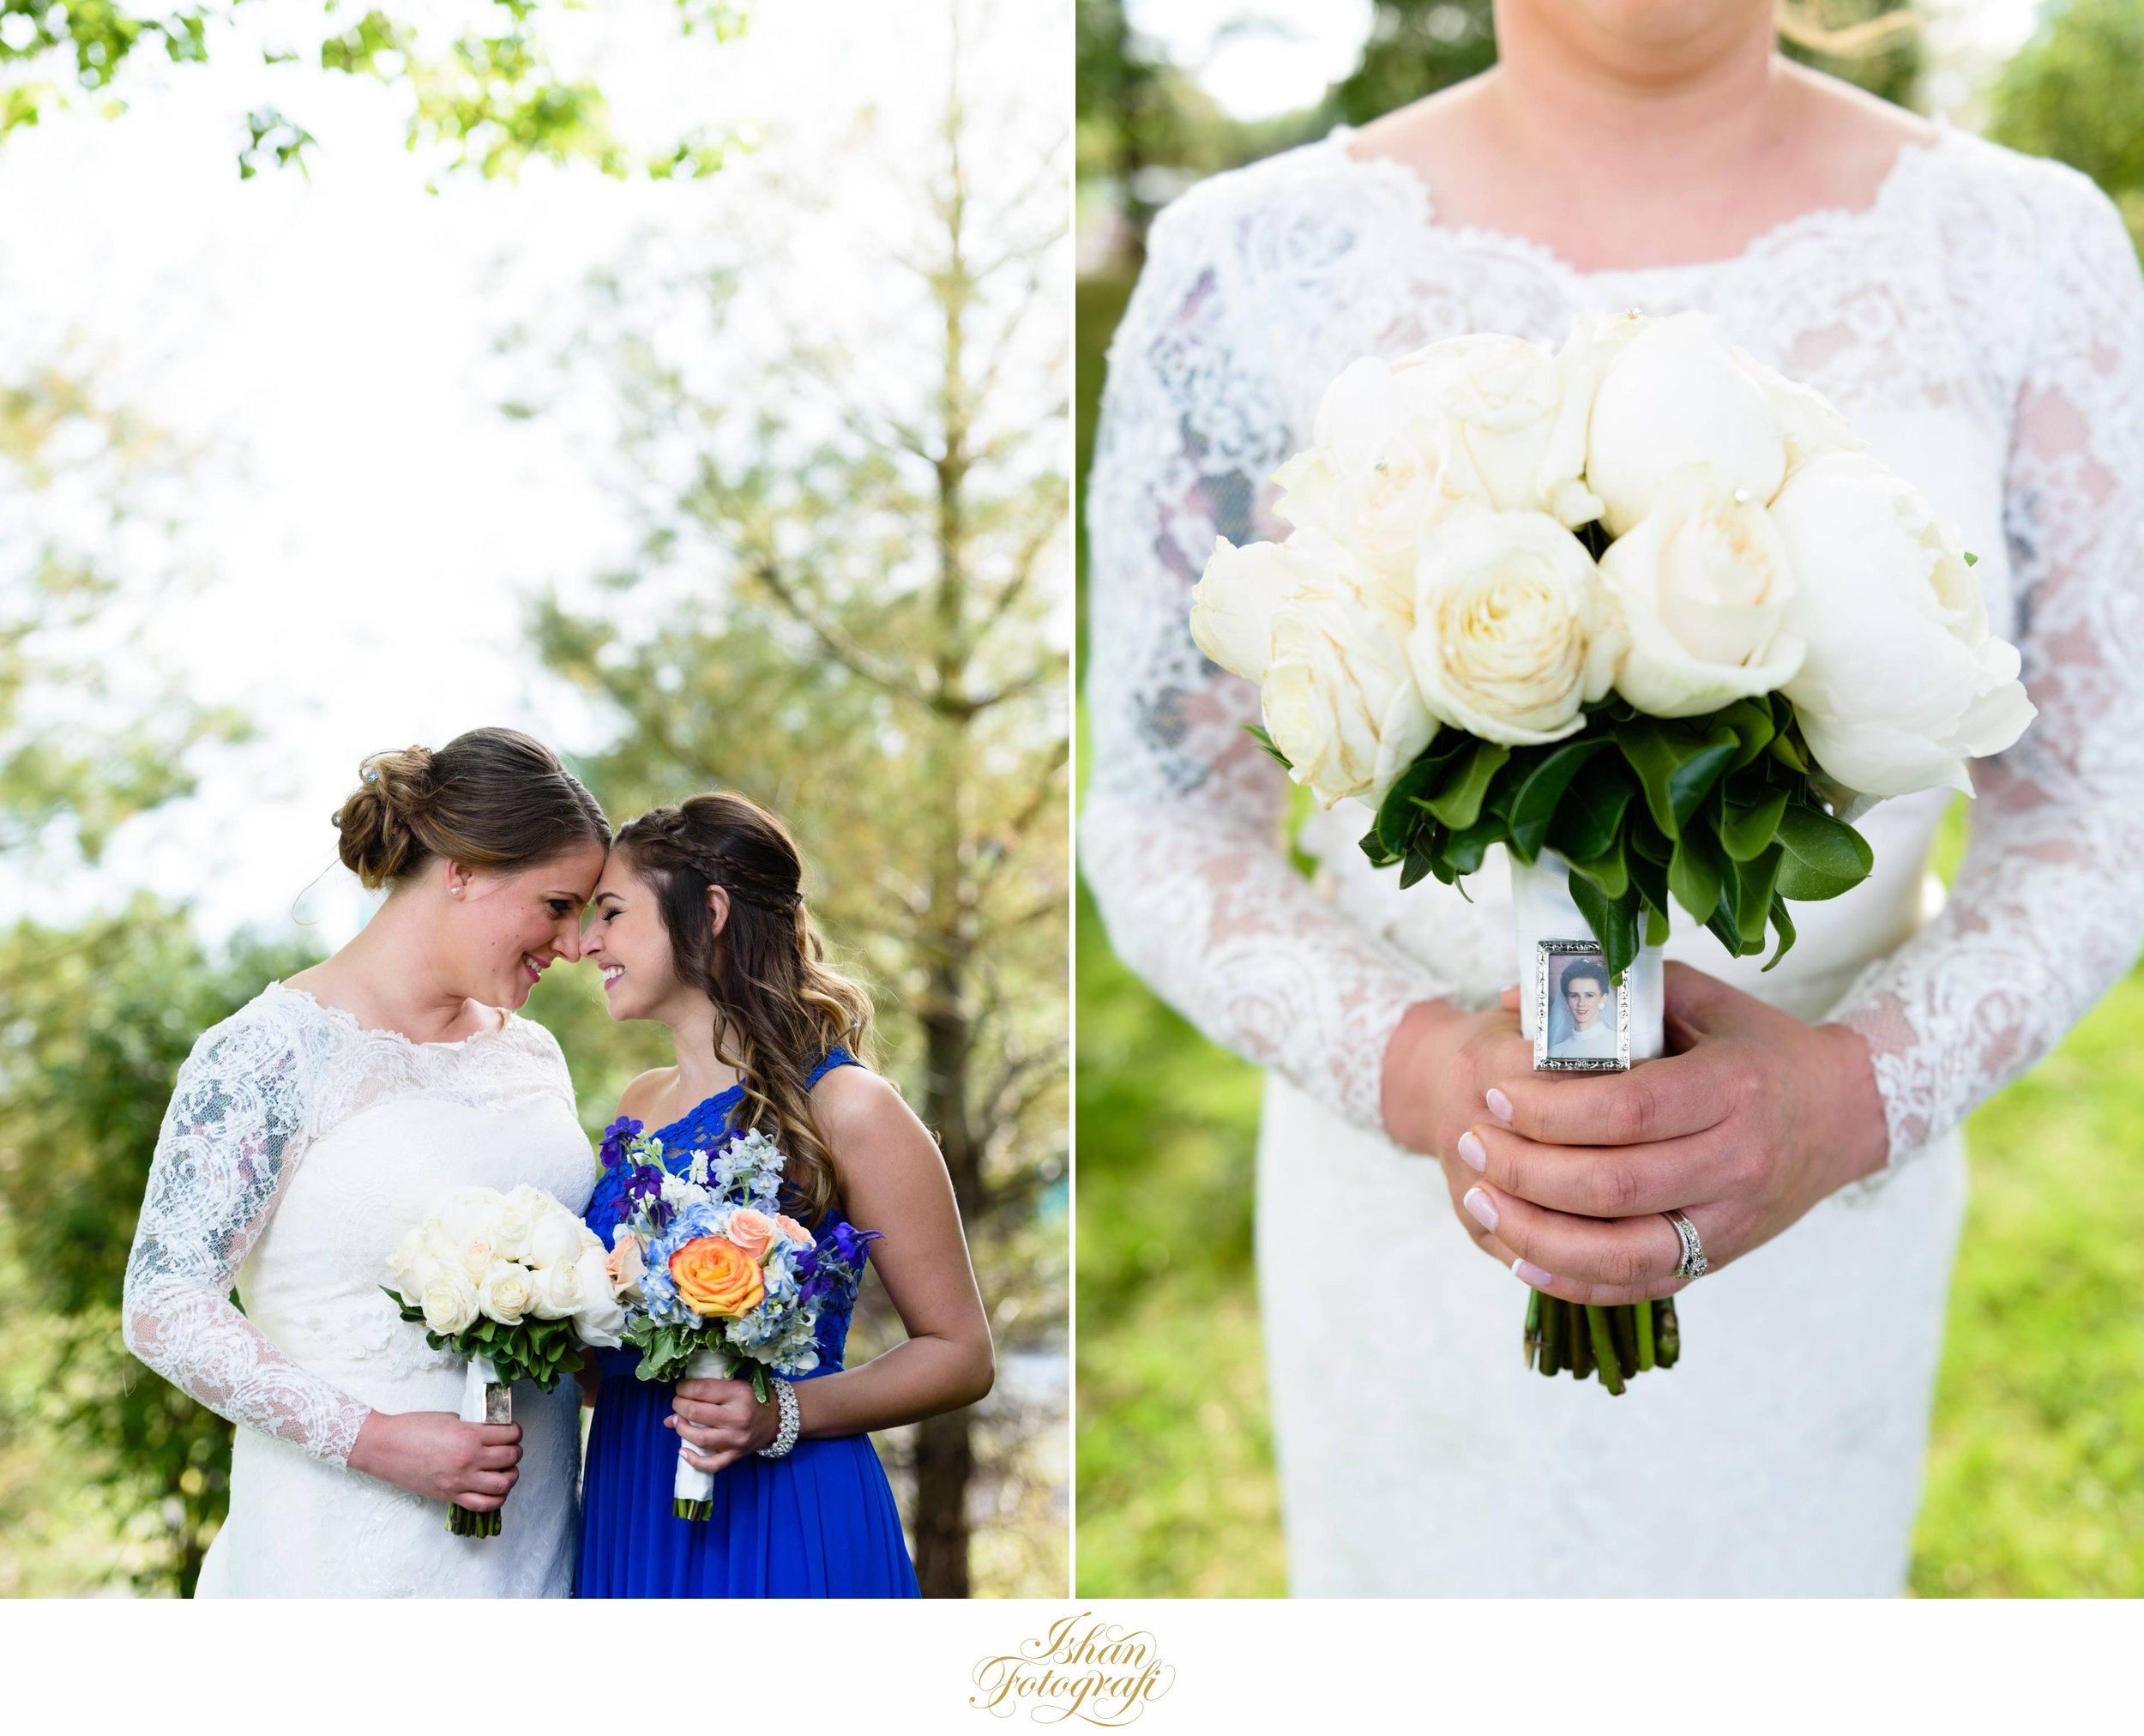 The bride and her bridesmaid. Our bride had her mother's wedding photo attached to the bouquet in her loving memory. The subtle details.